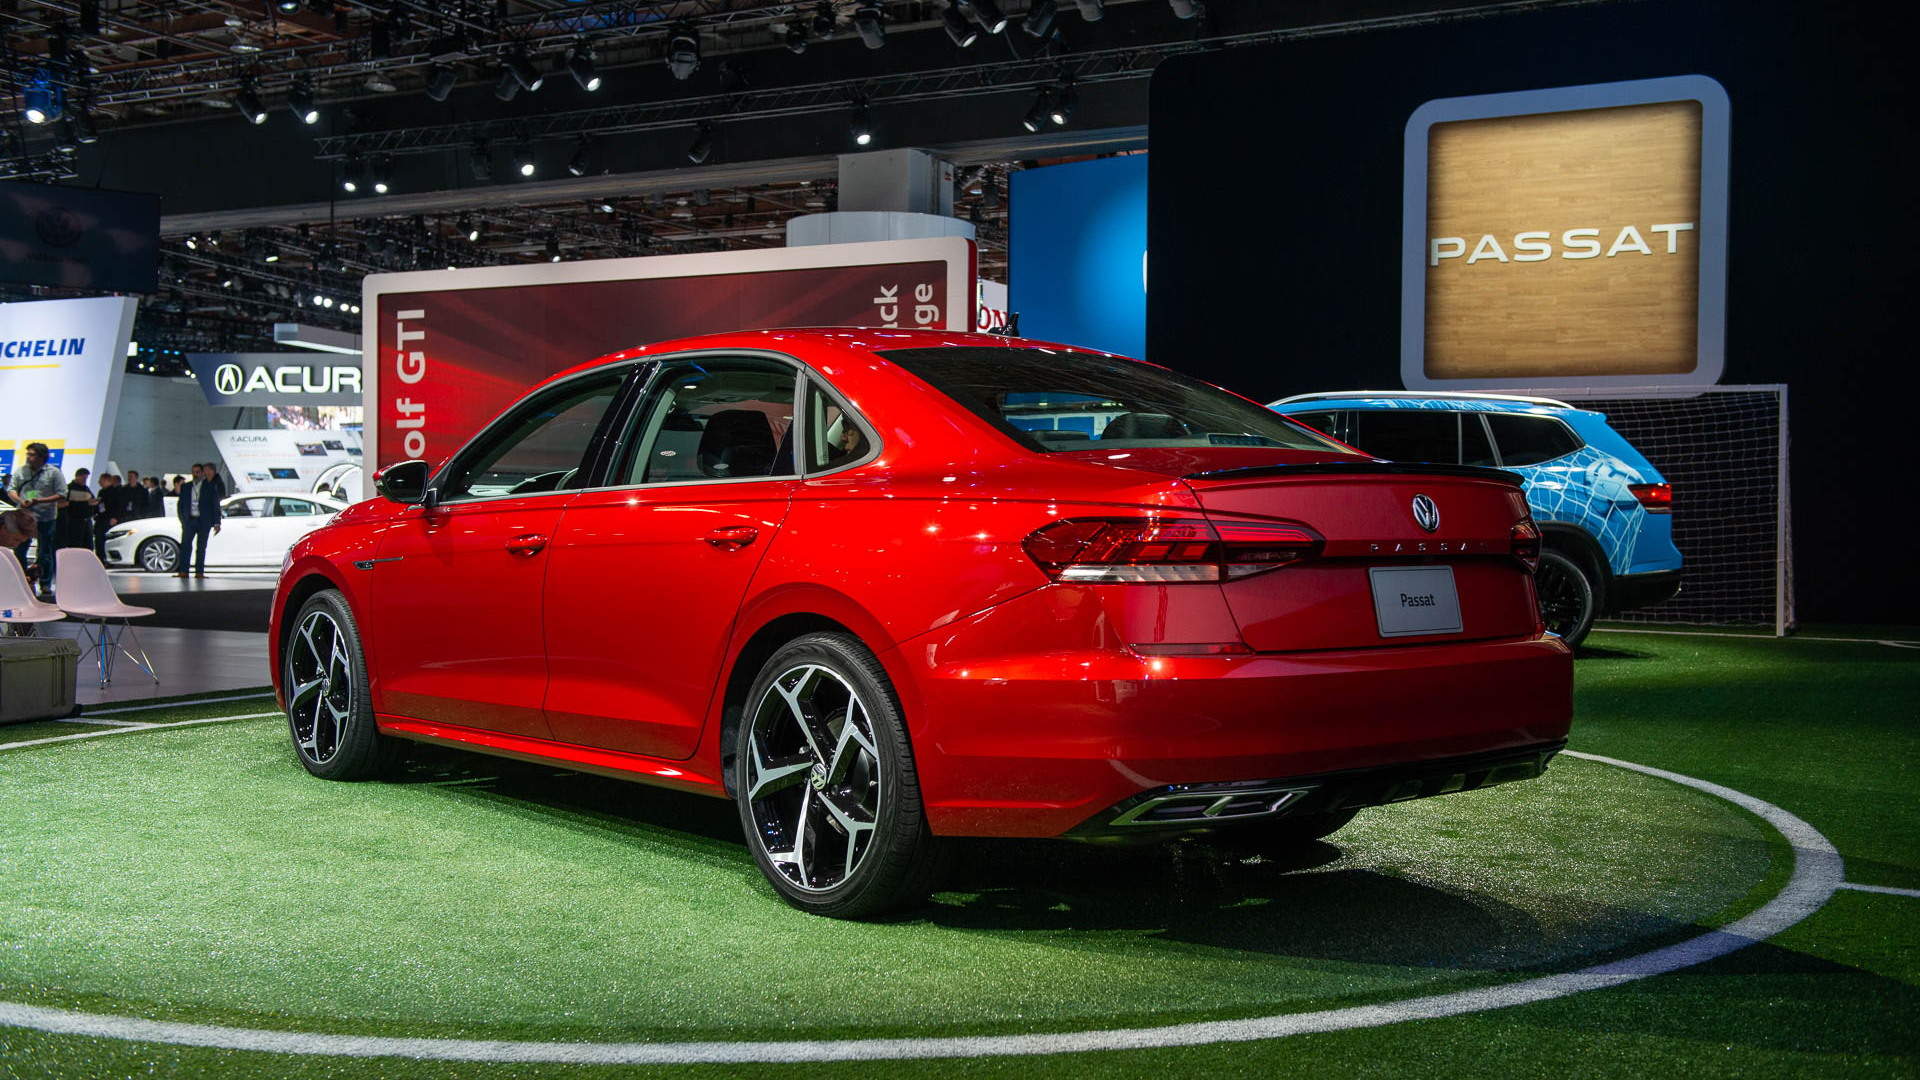 2020 Volkswagen Passat More Of The Same For American Made Mid Sizer